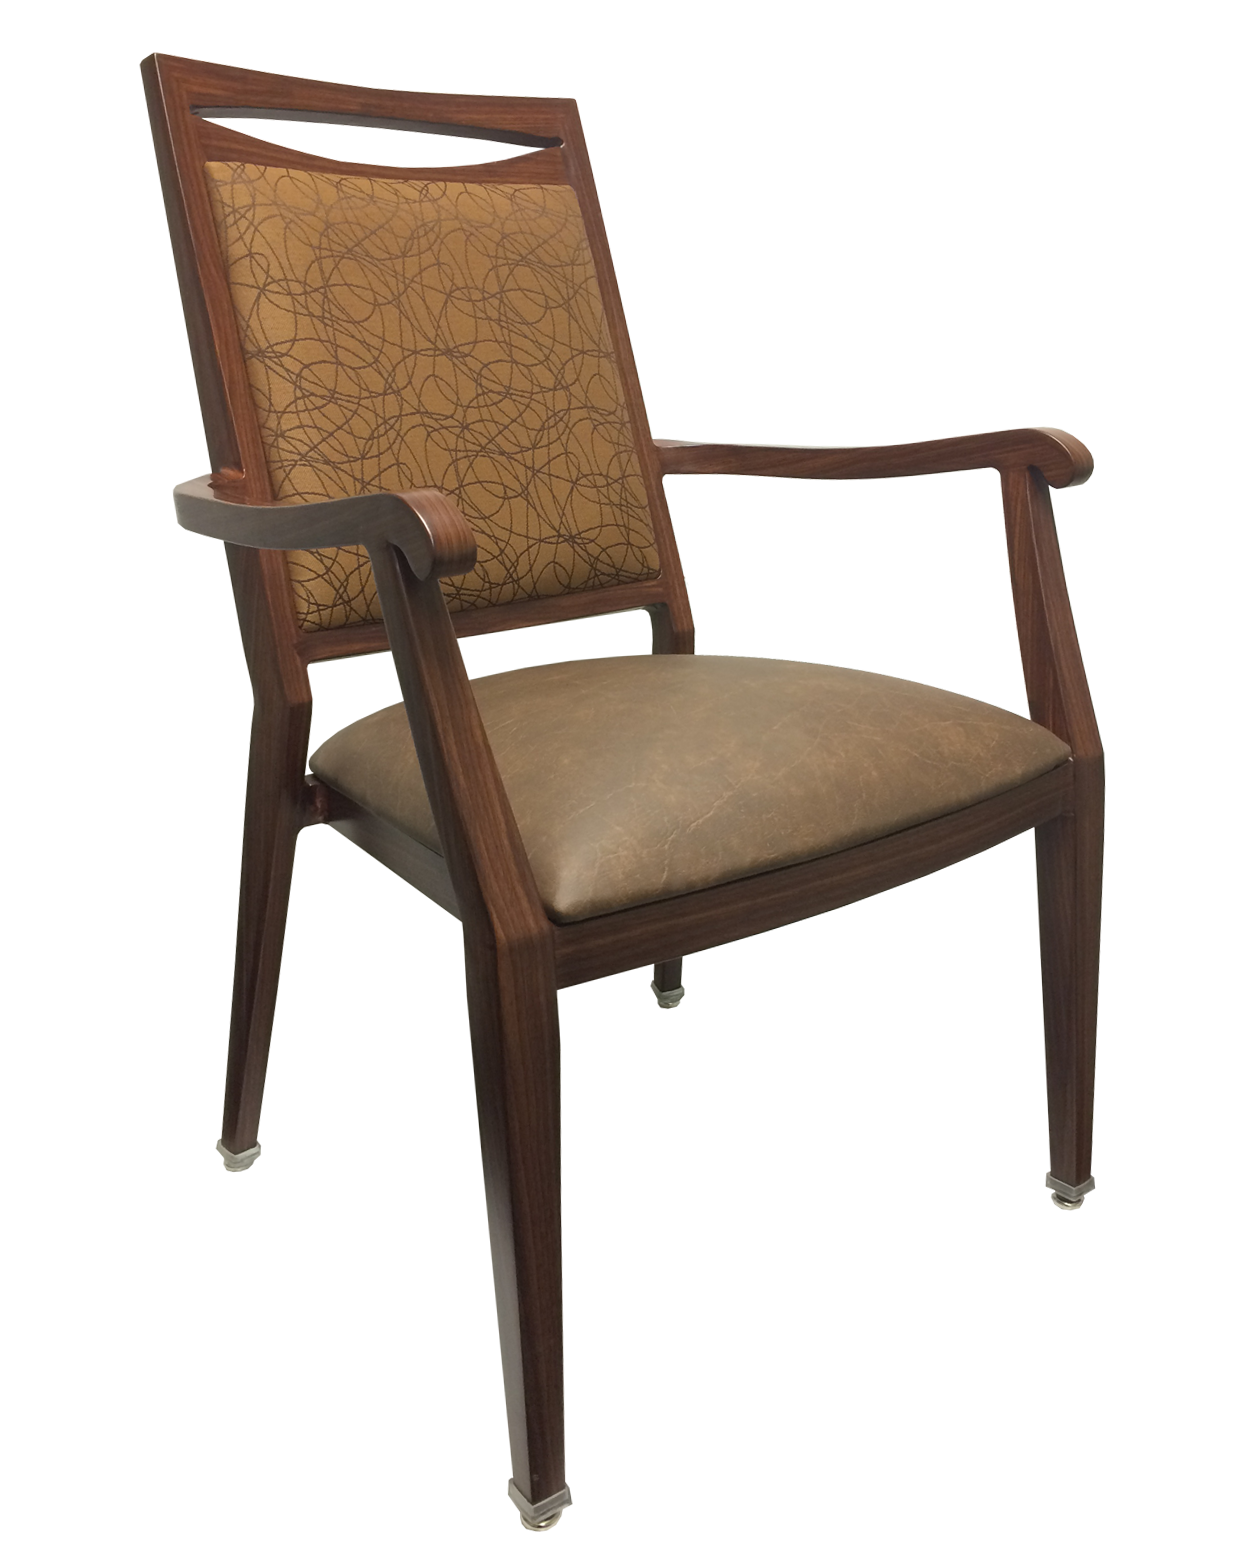 Aluminum Wood-Grain Dining Chairs